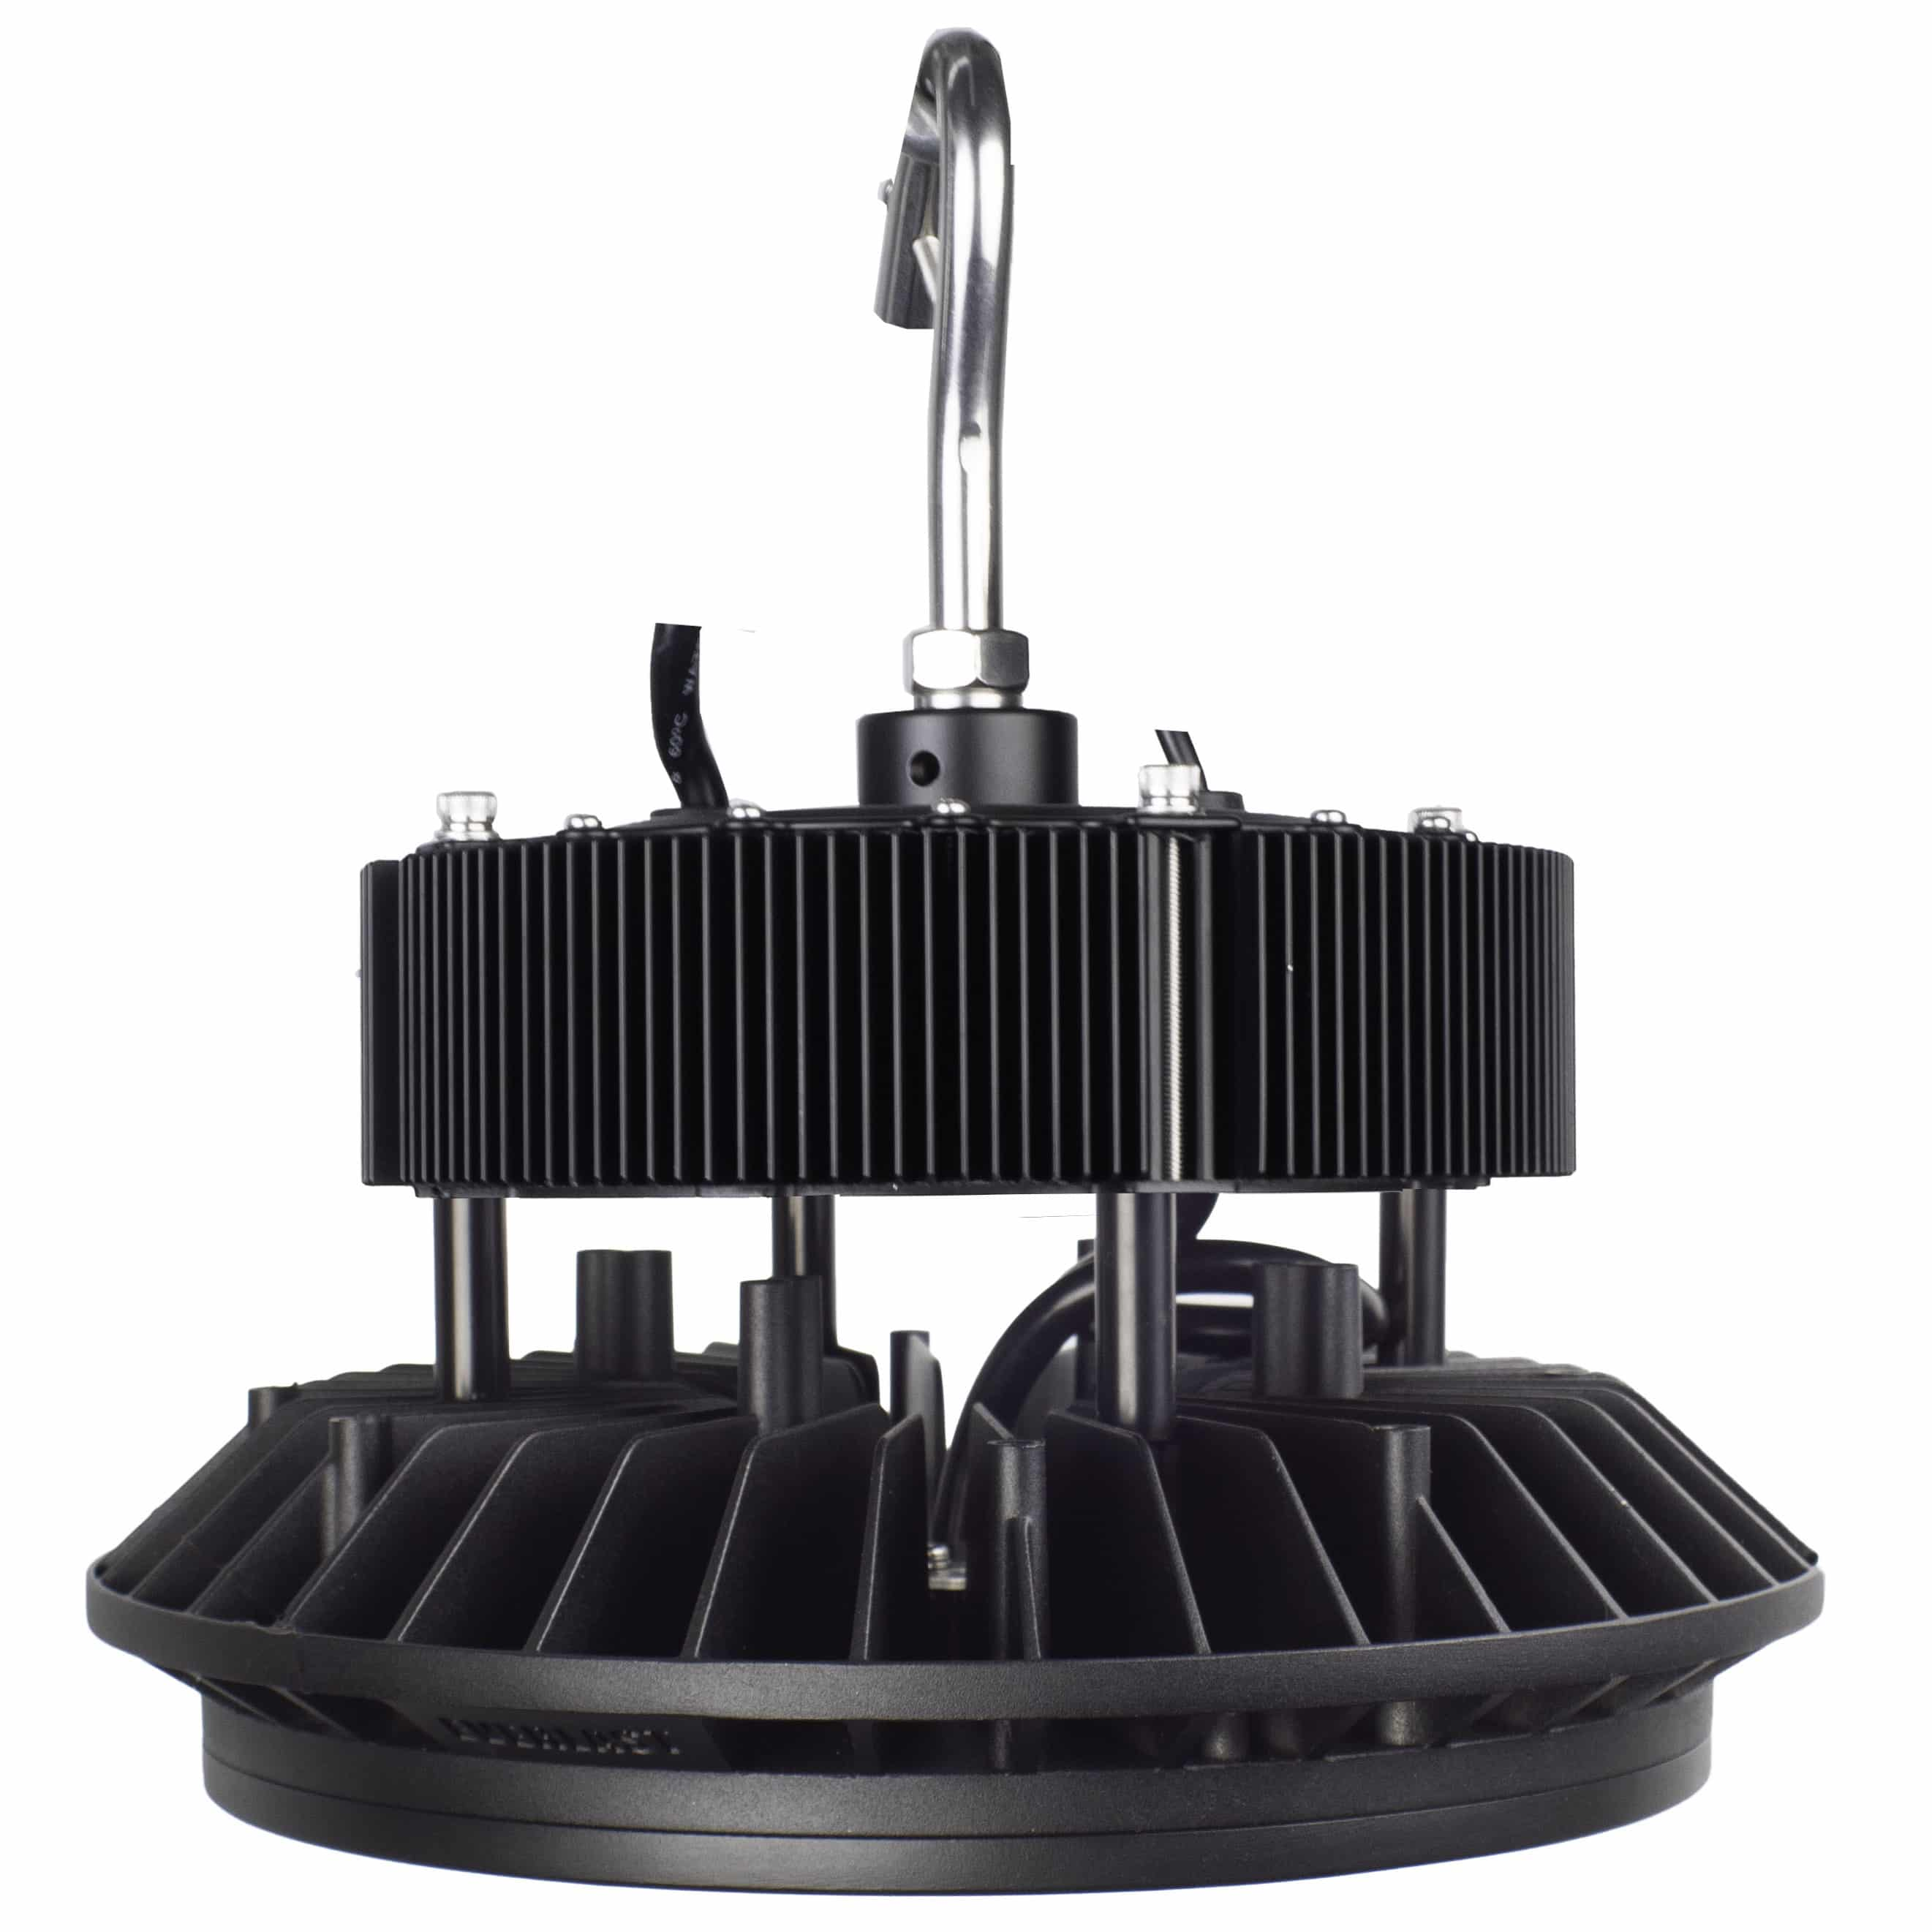 Black EverLast Lighting UFO style high temp high bay light with no reflector